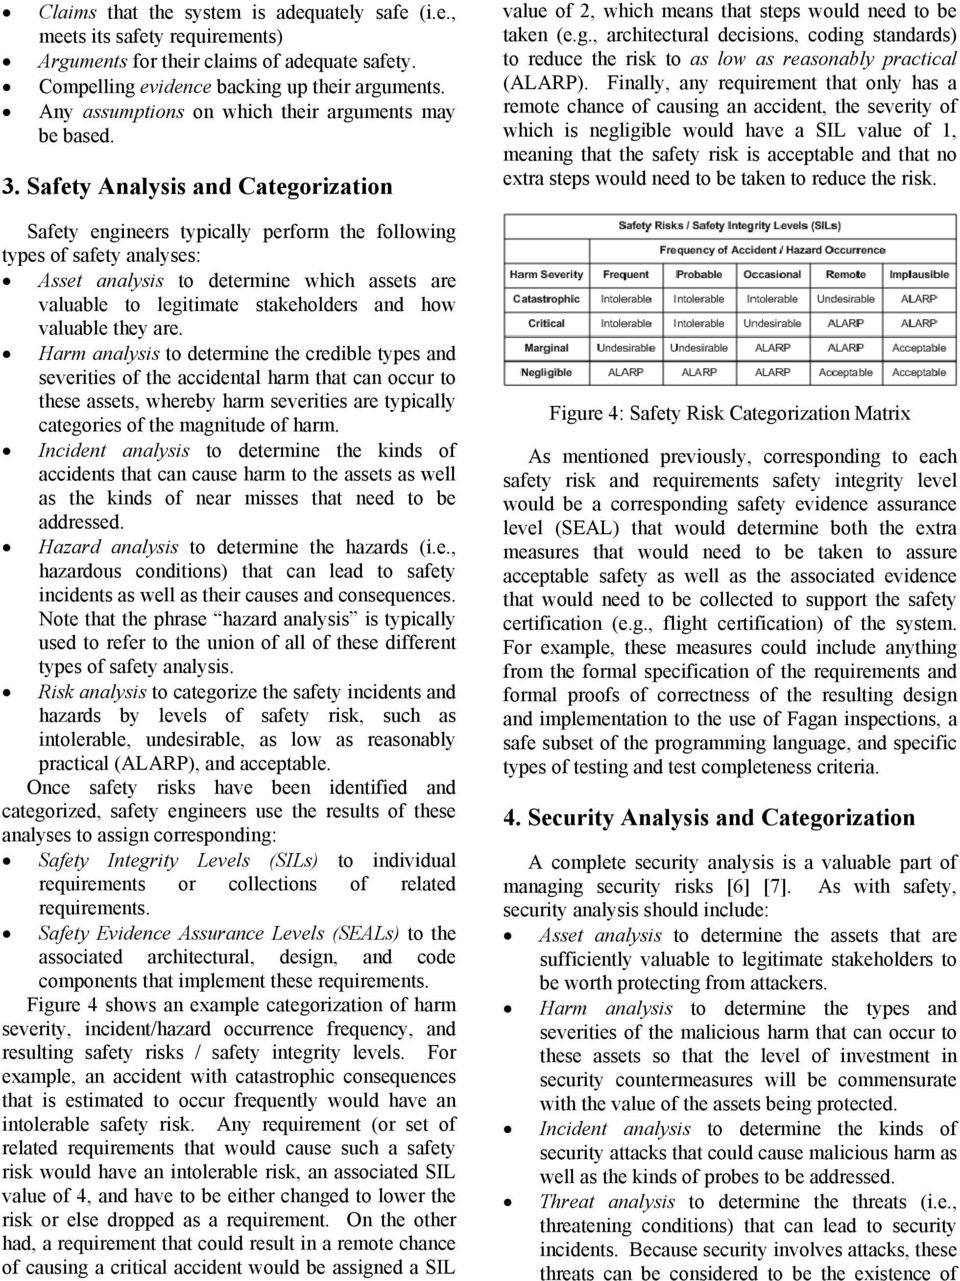 Safety Analysis and Categorization Safety engineers typically perform the following types of safety analyses: Asset analysis to determine which assets are valuable to legitimate stakeholders and how